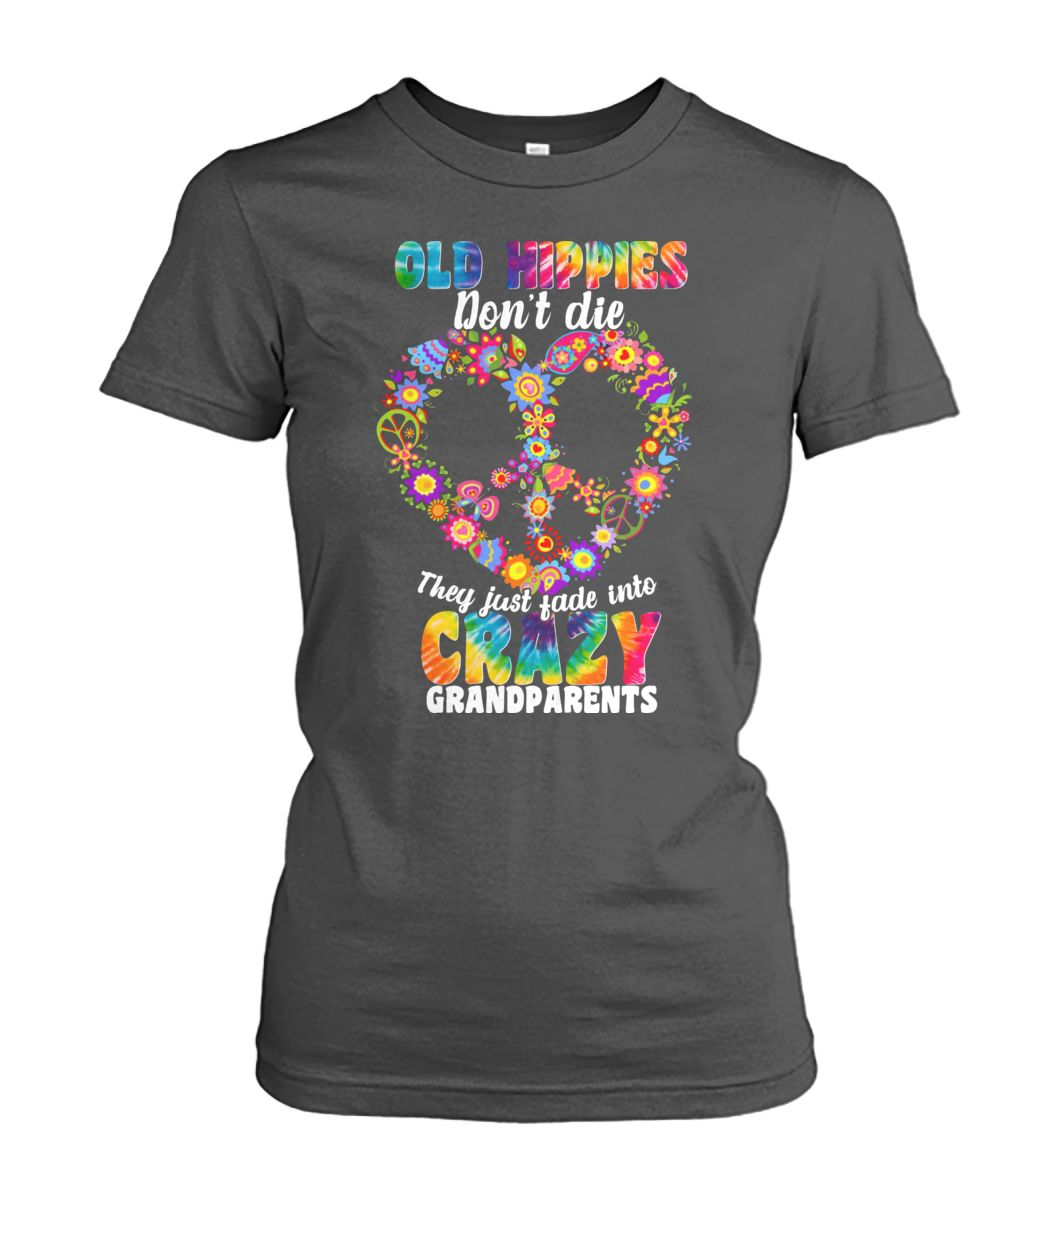 Autism old hippies don't die they just fade into crazy grandparent women's crew tee